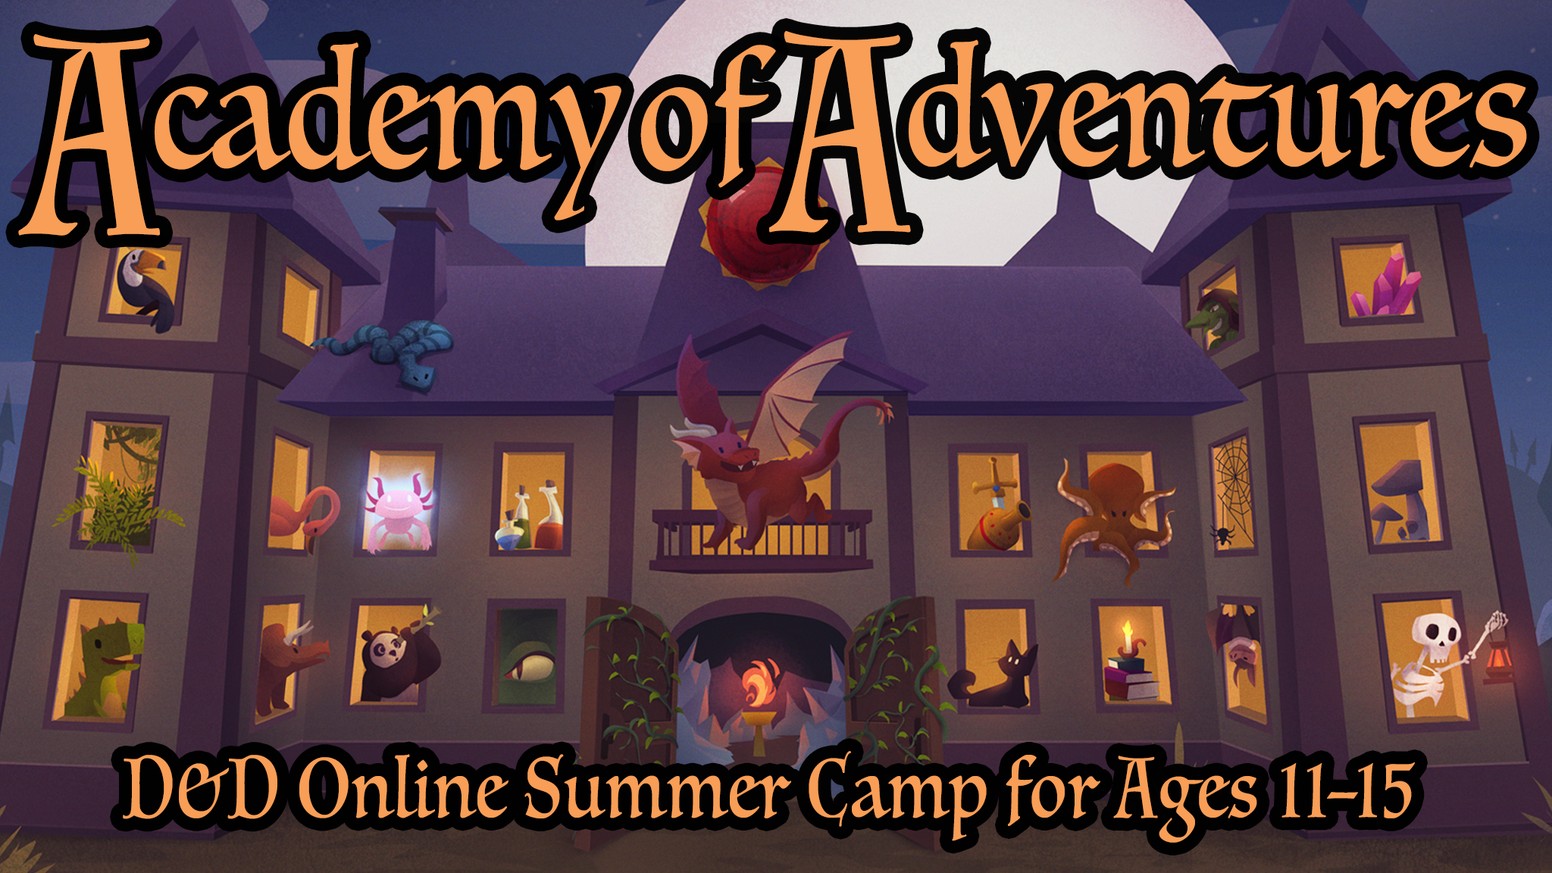 Five days of fun as kids learn to play D&D, build exciting characters, and begin their heroic adventures!